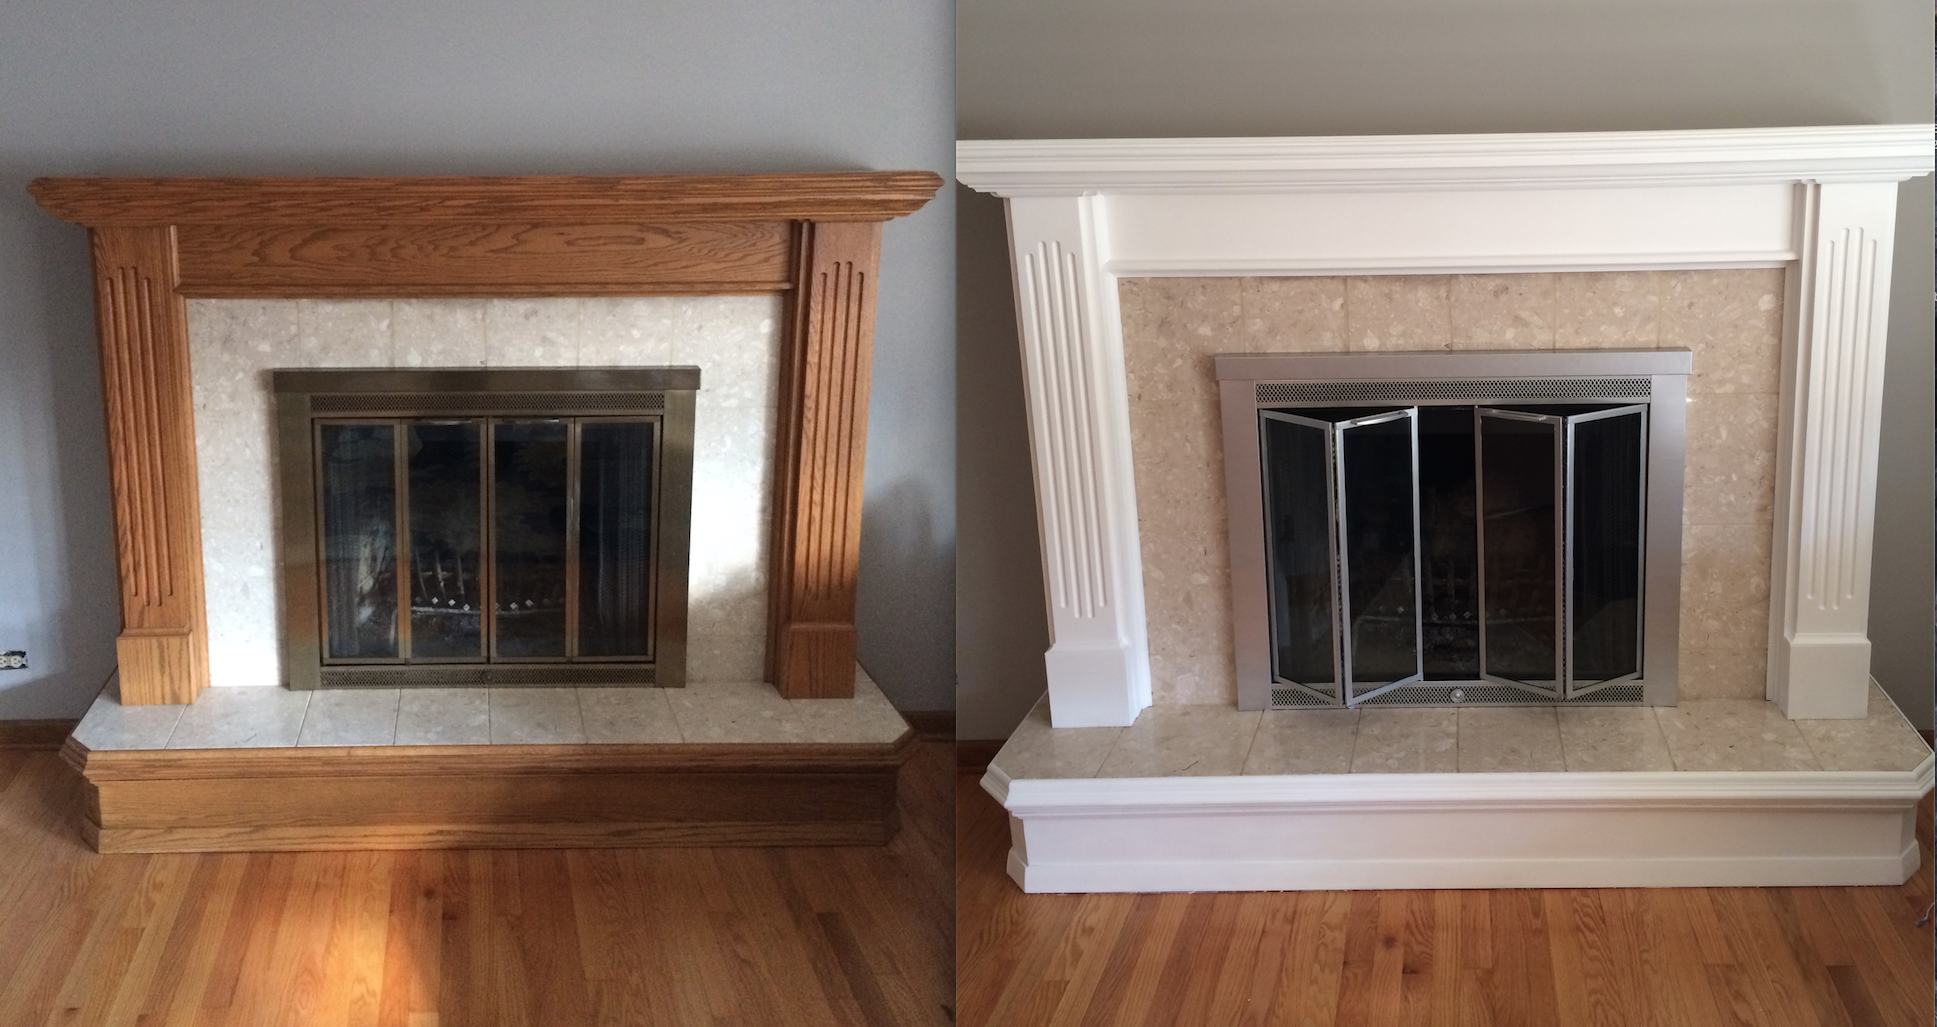 Fireplace makeover with Annie Sloan chalk paint - no sanding was required, but I did a little for a perfectly smooth finish. I completed this project in the winter, but my intention was to re-do the fireplace insert with an oil-rubbed bronze high heat spray paint. I never quite got around to that project!